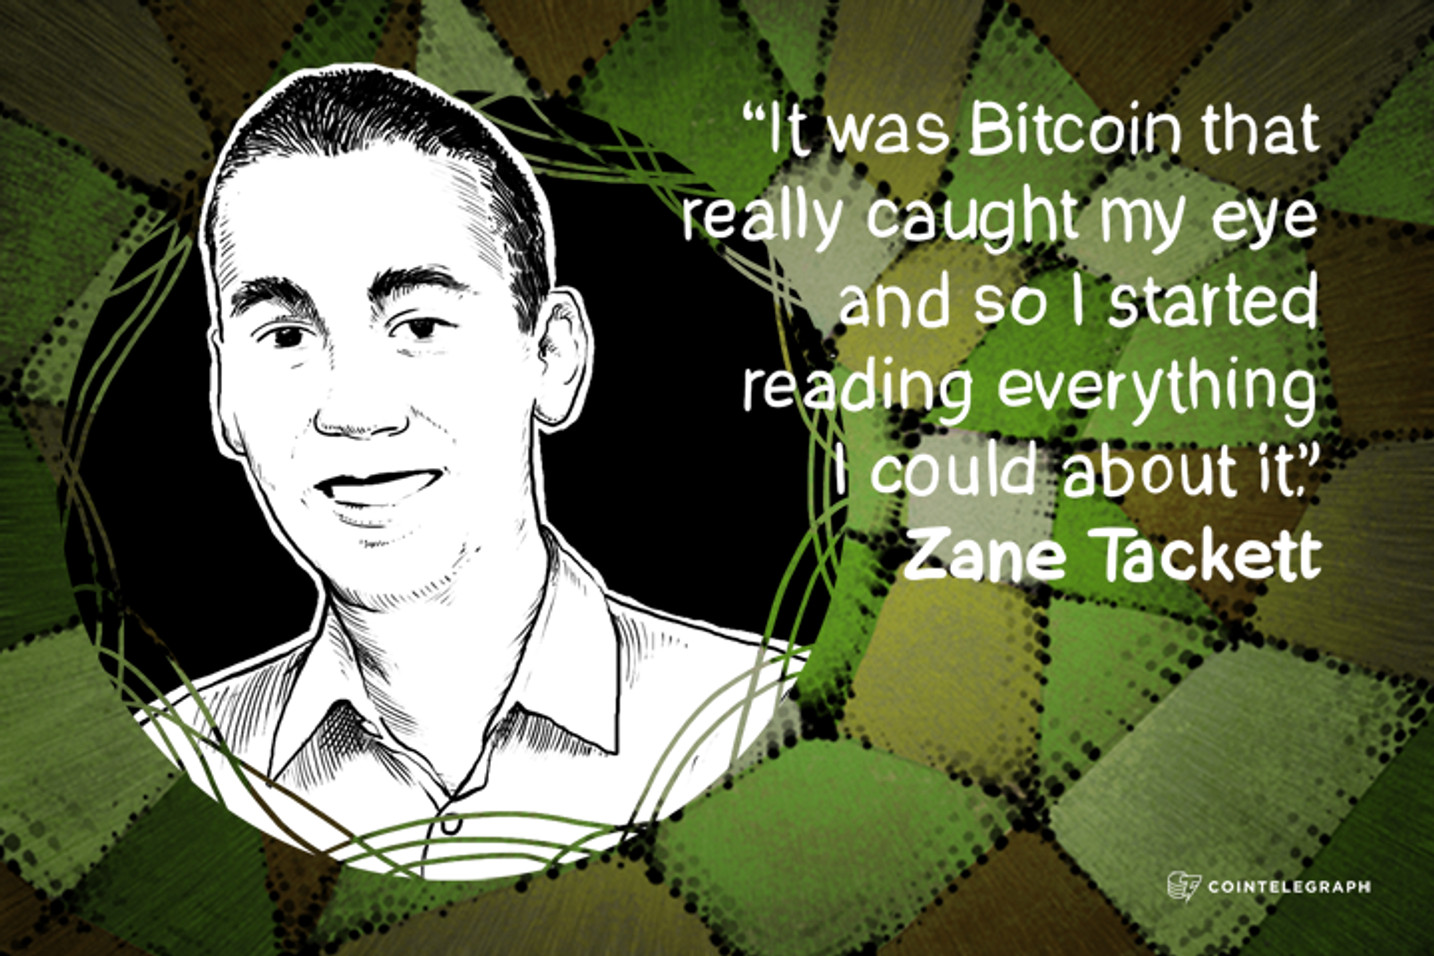 Interview with Zane Tackett, OKCoin